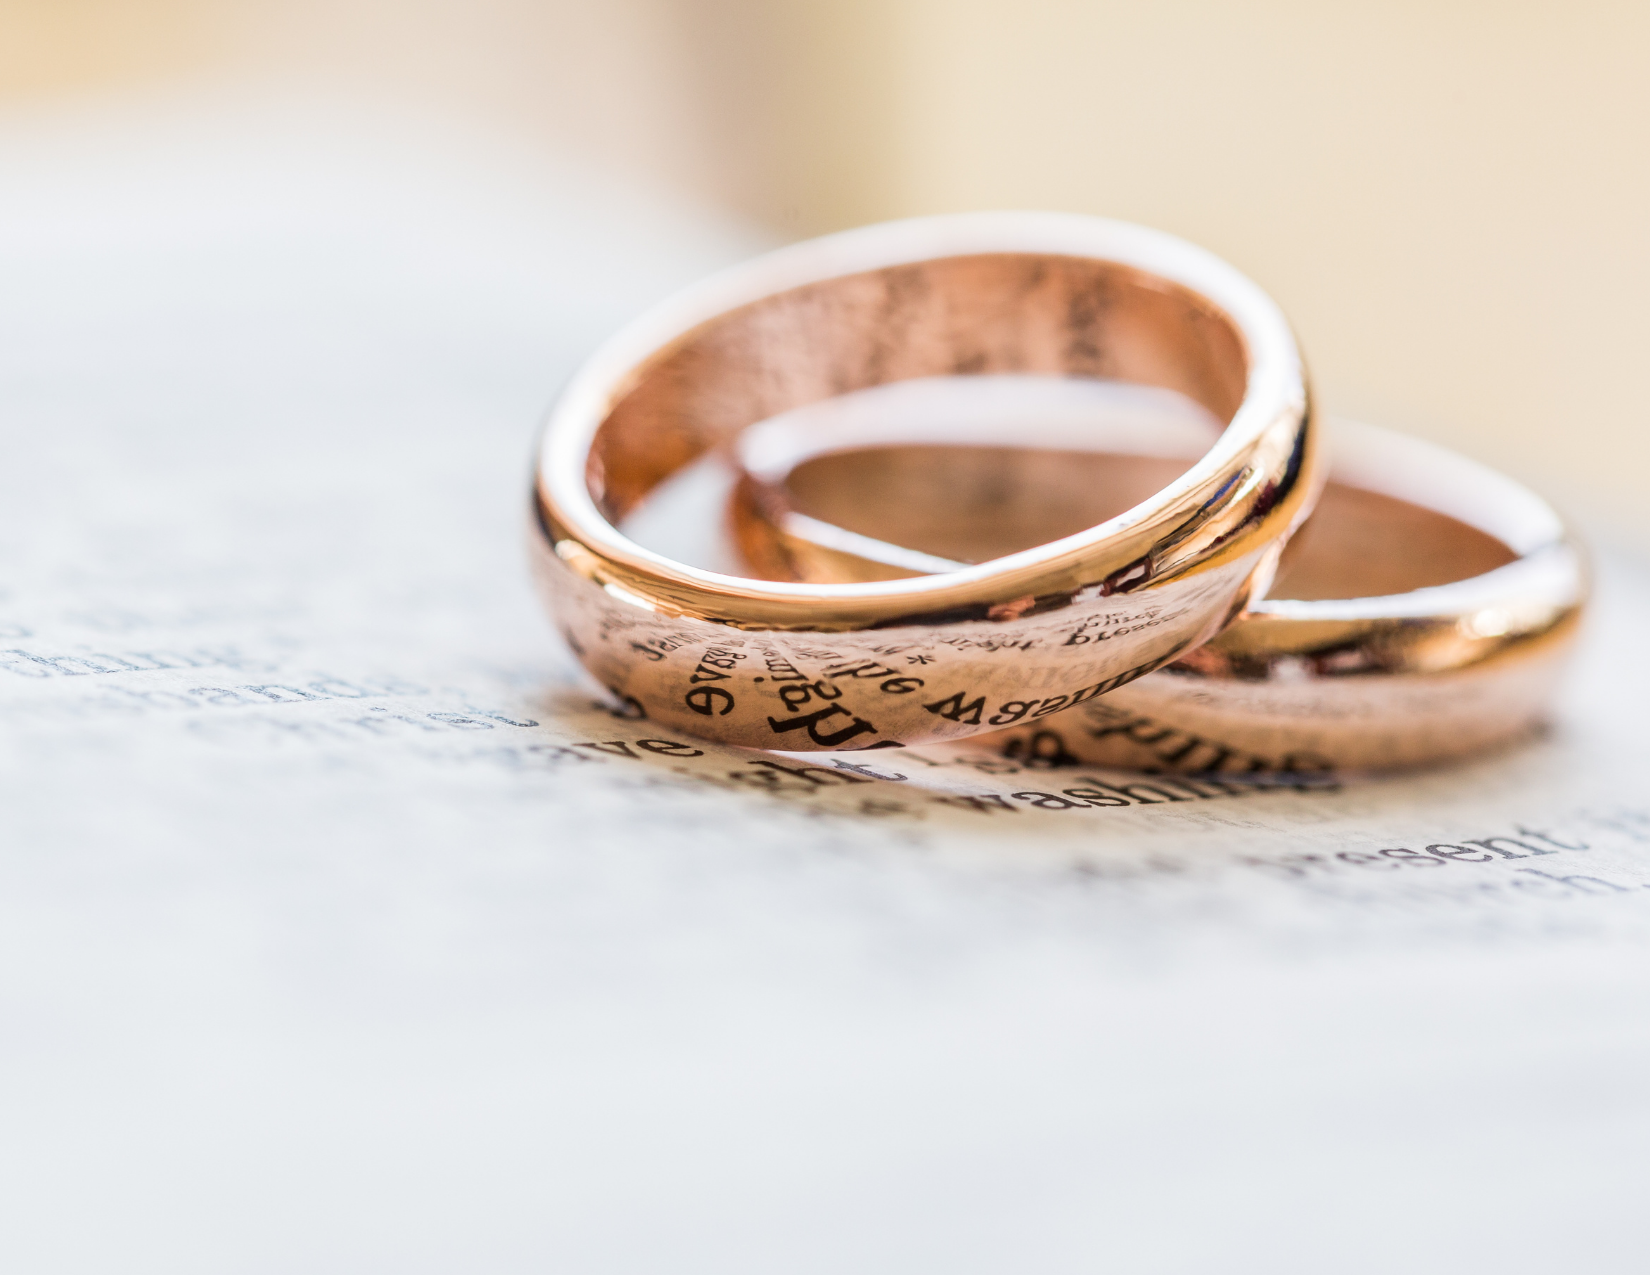 Understanding the Similarities and Differences Between Common-Law Relationships and Marriages